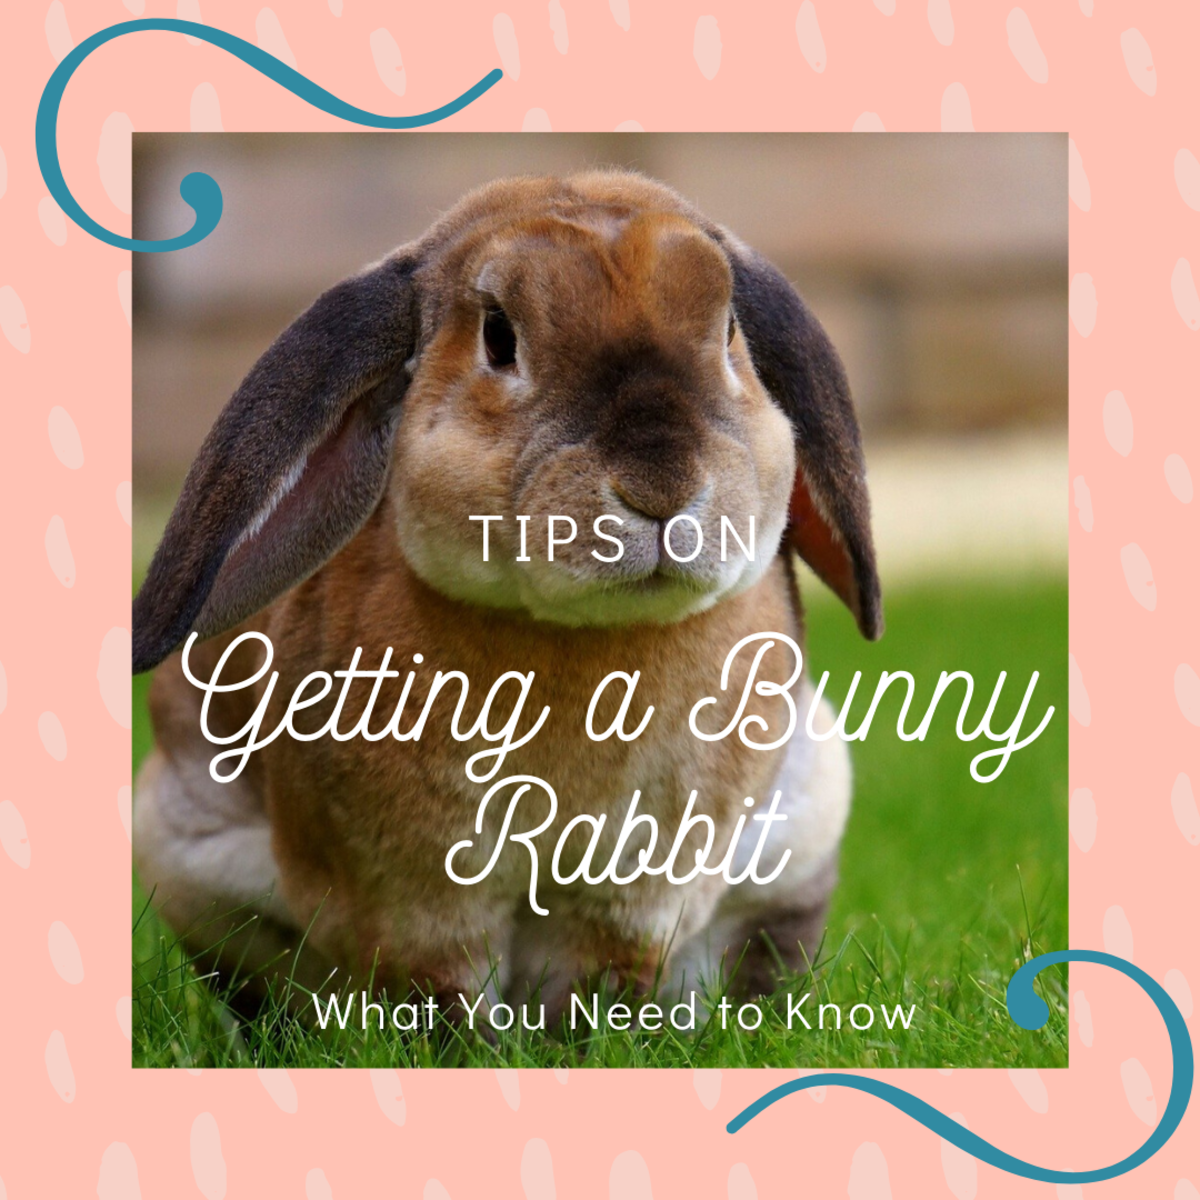 Tips on What to Expect If You Are Getting a Bunny Rabbit as a Pet: What You Should Know